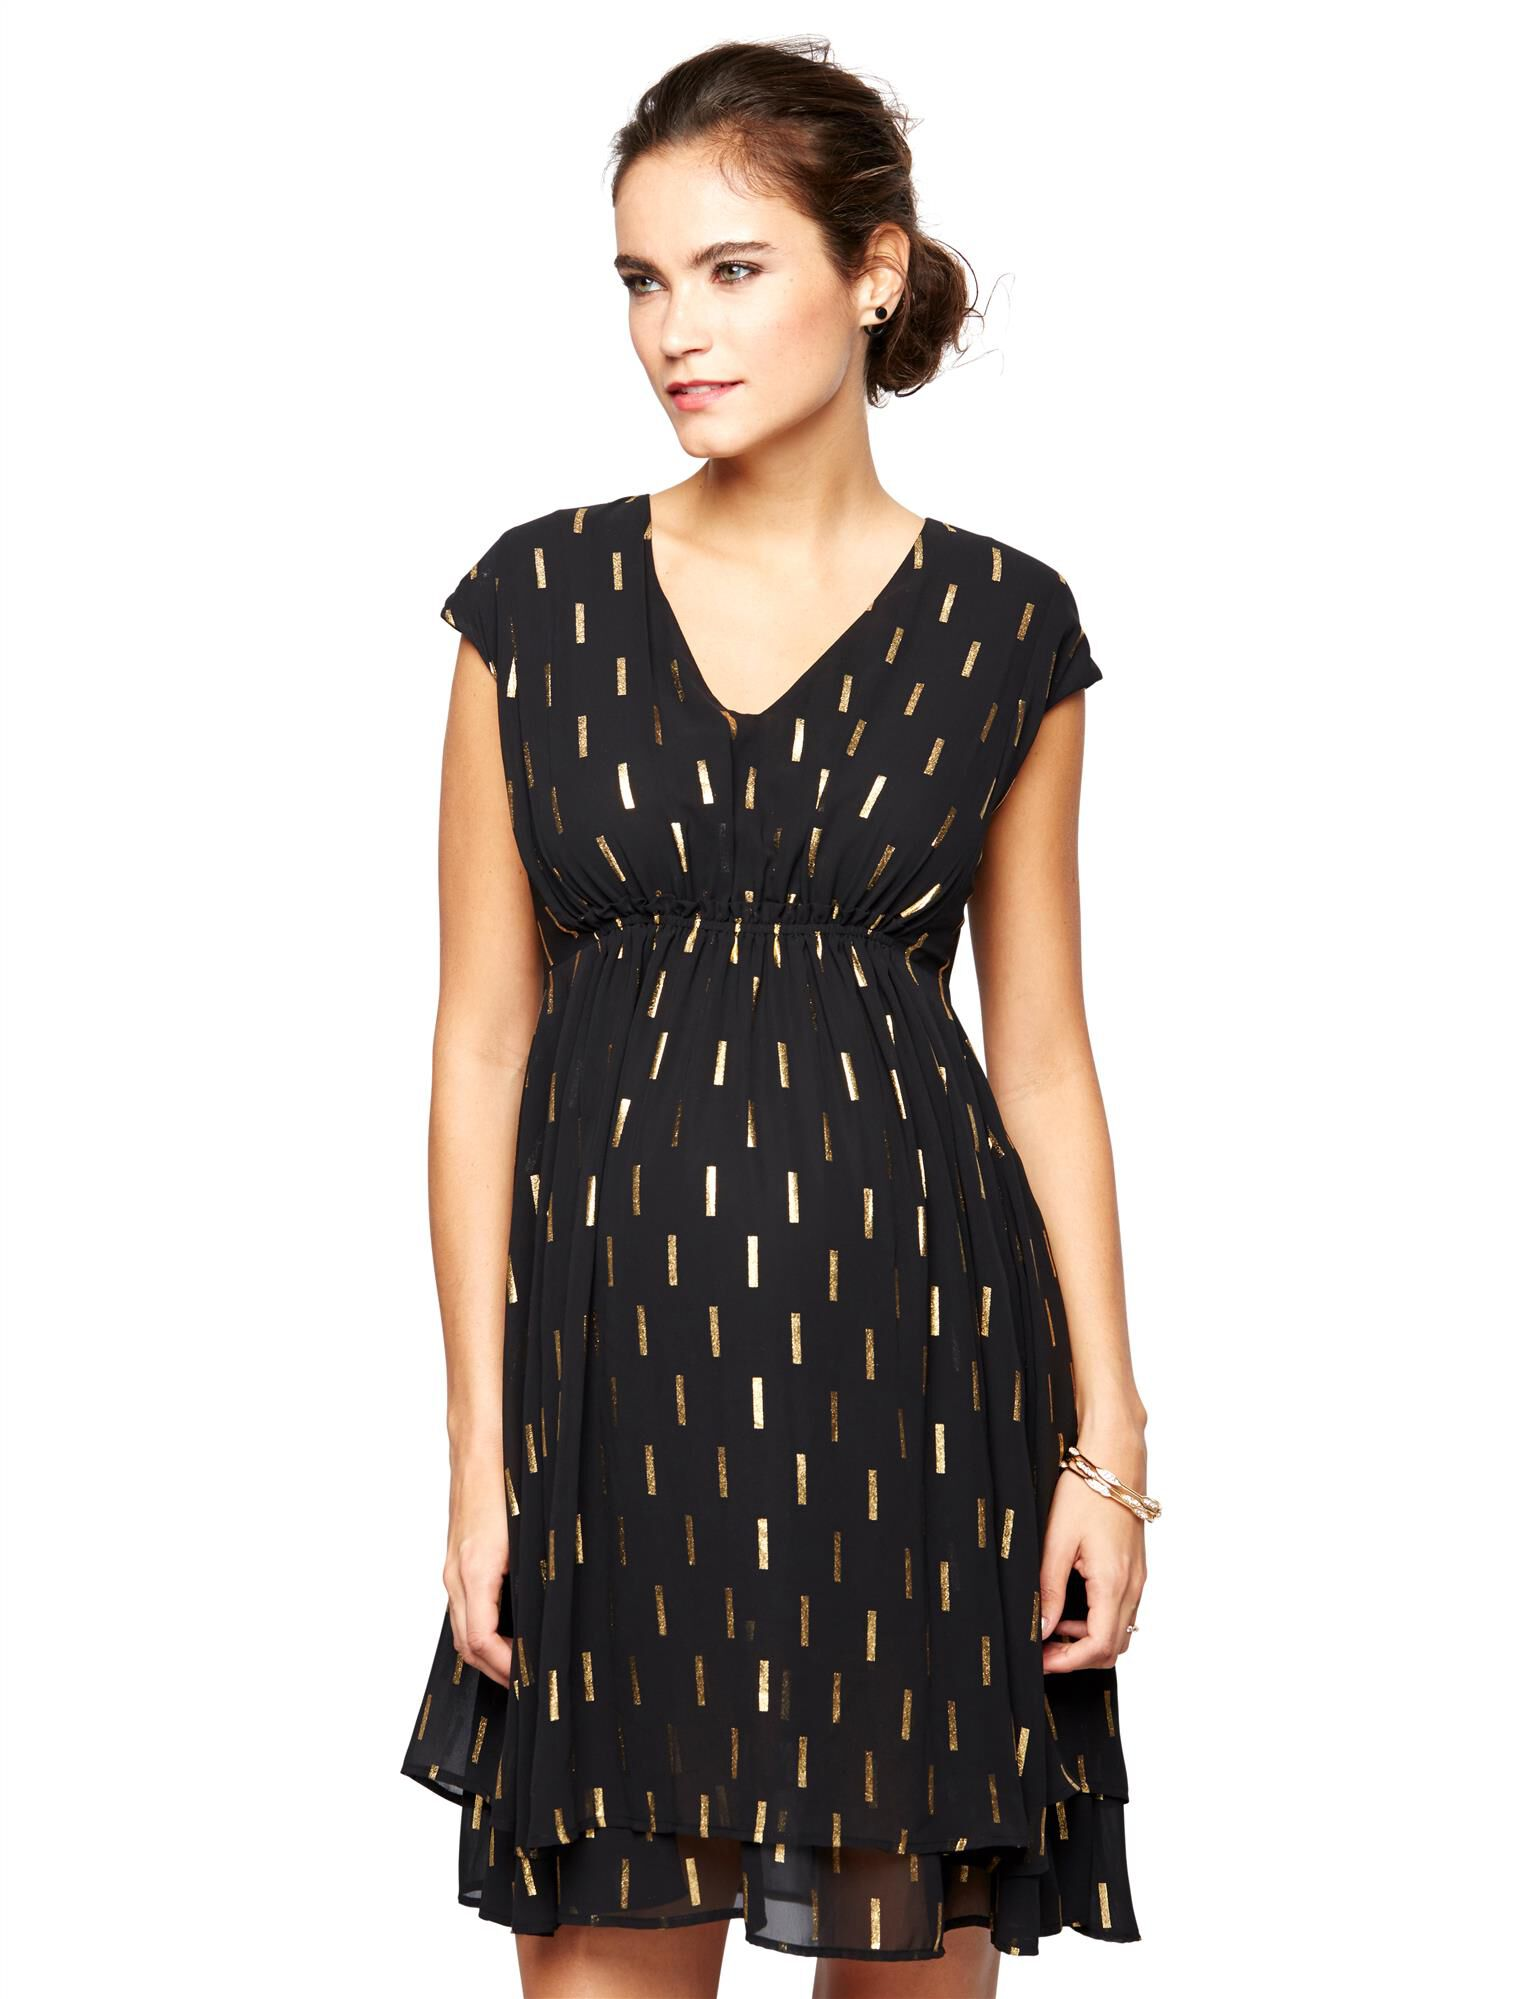 Collective Concepts Metallic Dot Print Maternity Dress